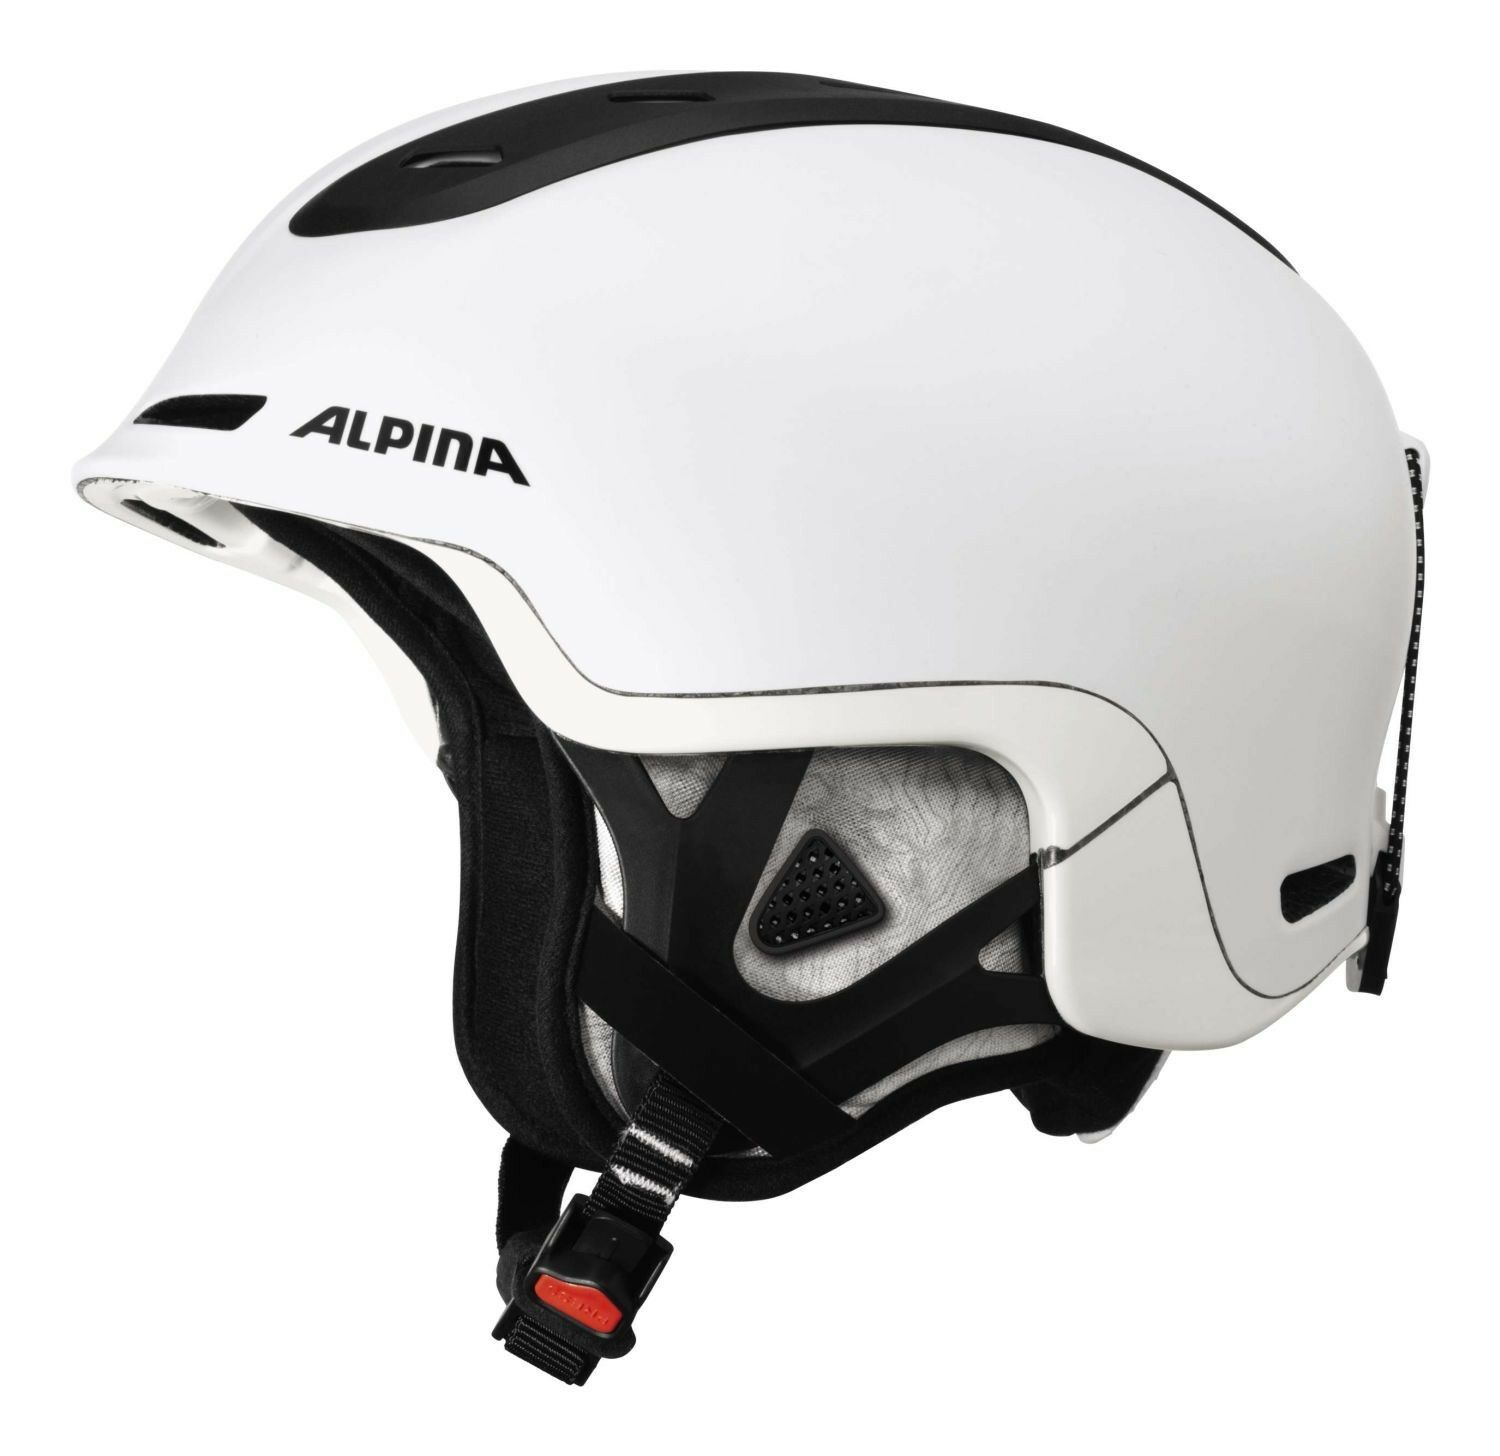 Alpina Spine Skihelm - Weiß matt